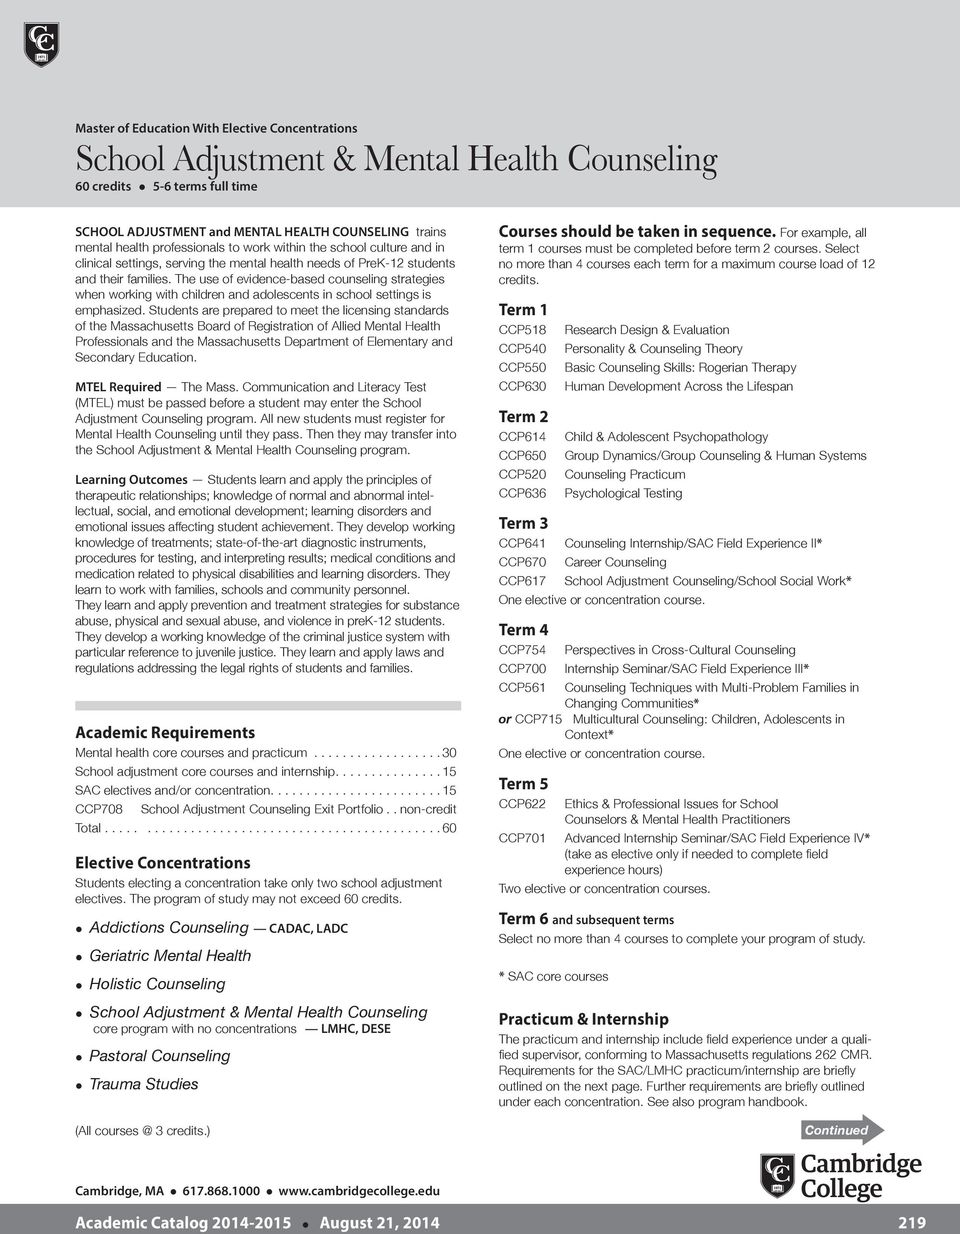 The use of evidence-based counseling strategies when working with children and adolescents in school settings is emphasized.